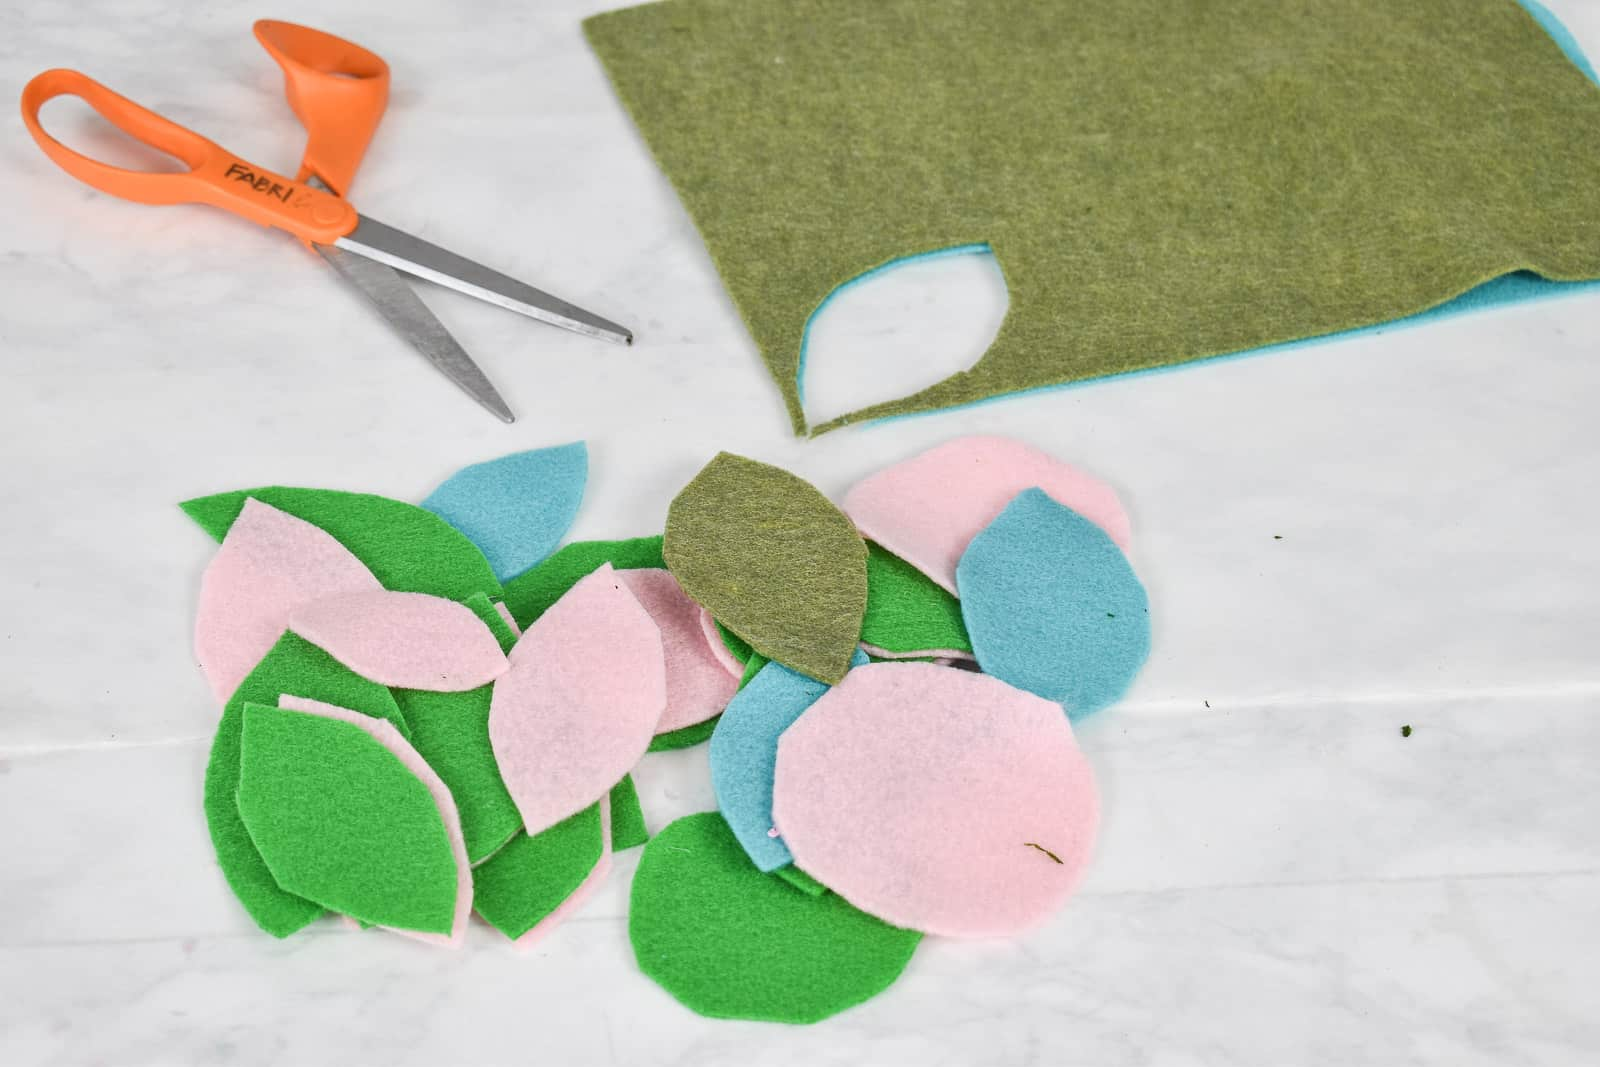 cut felt into leaves and circles